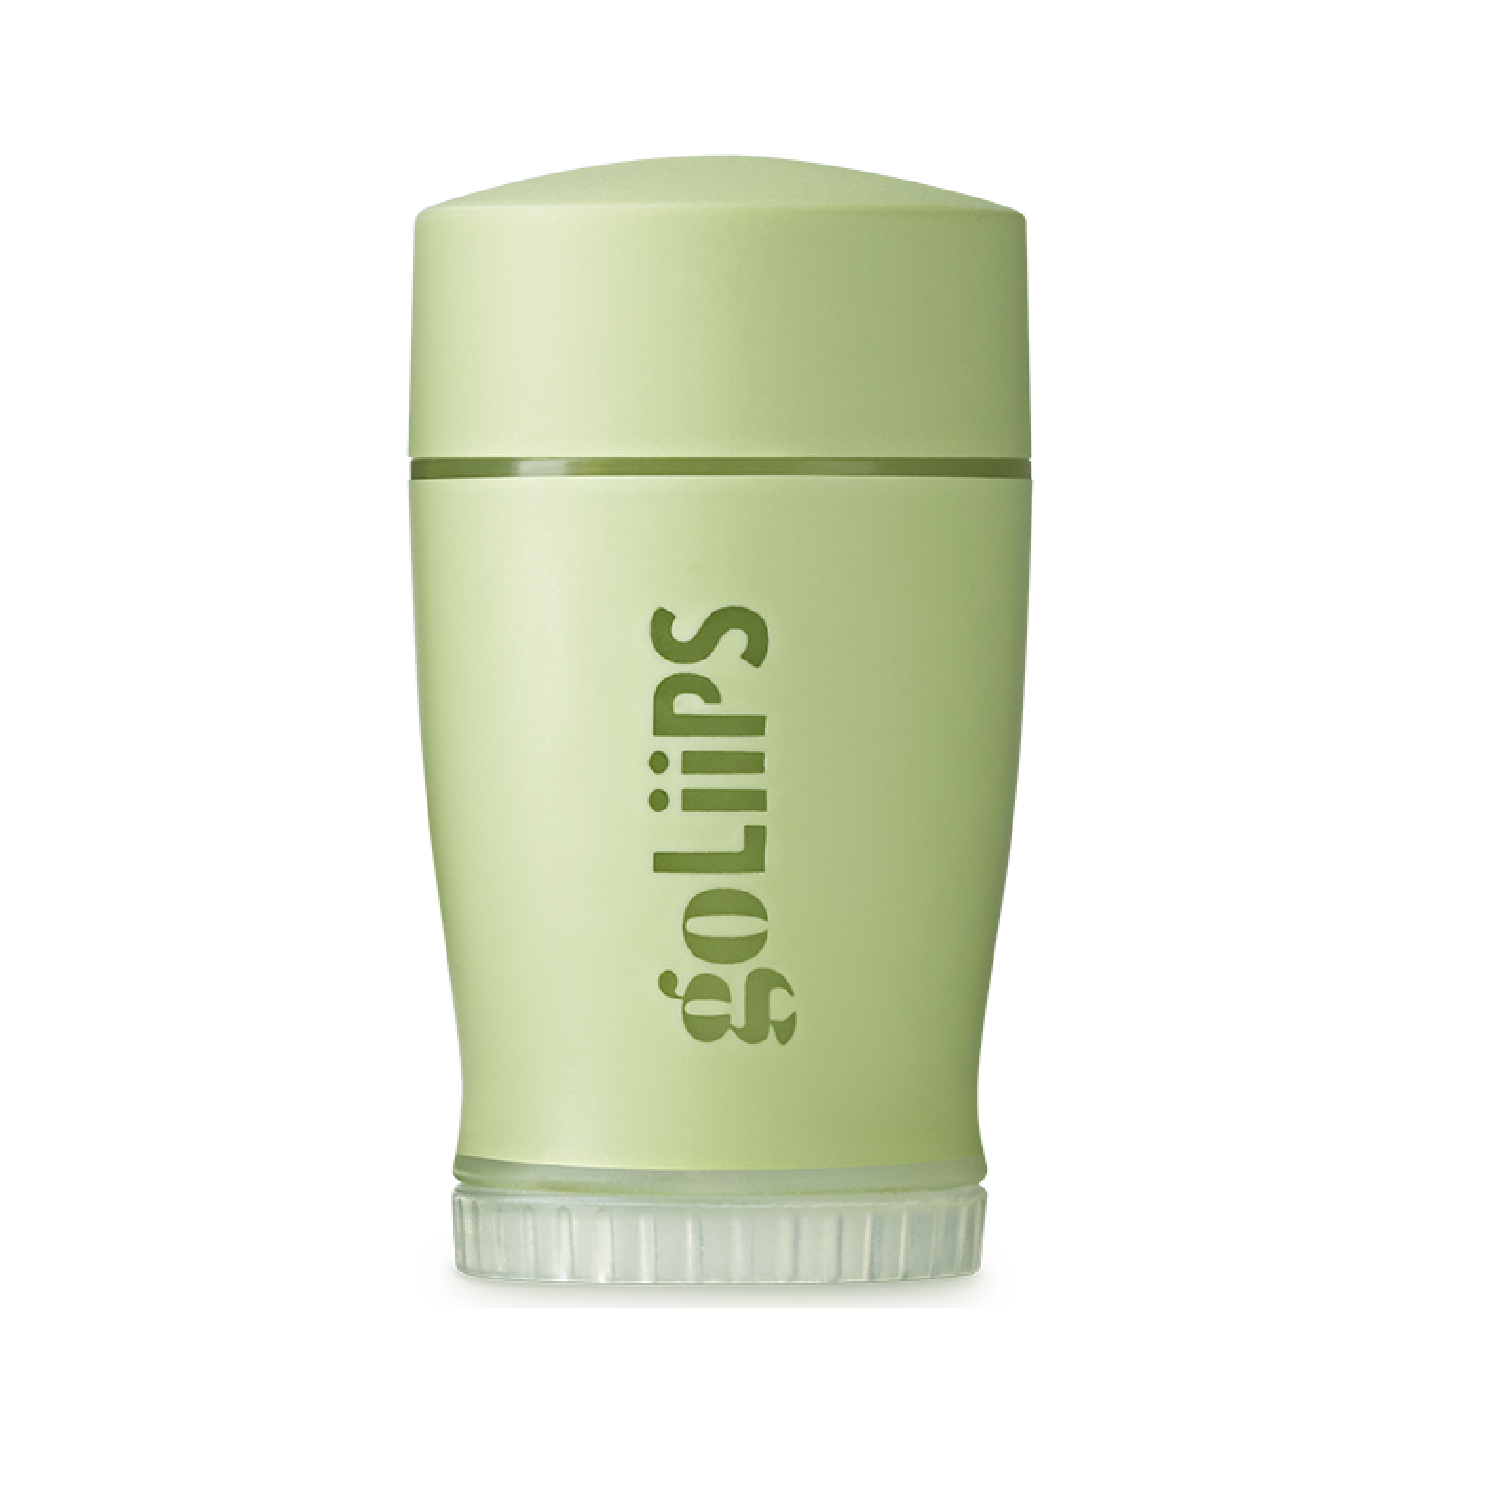 goLiips Lip Balm Twist- Mint Green Tea, 4g.